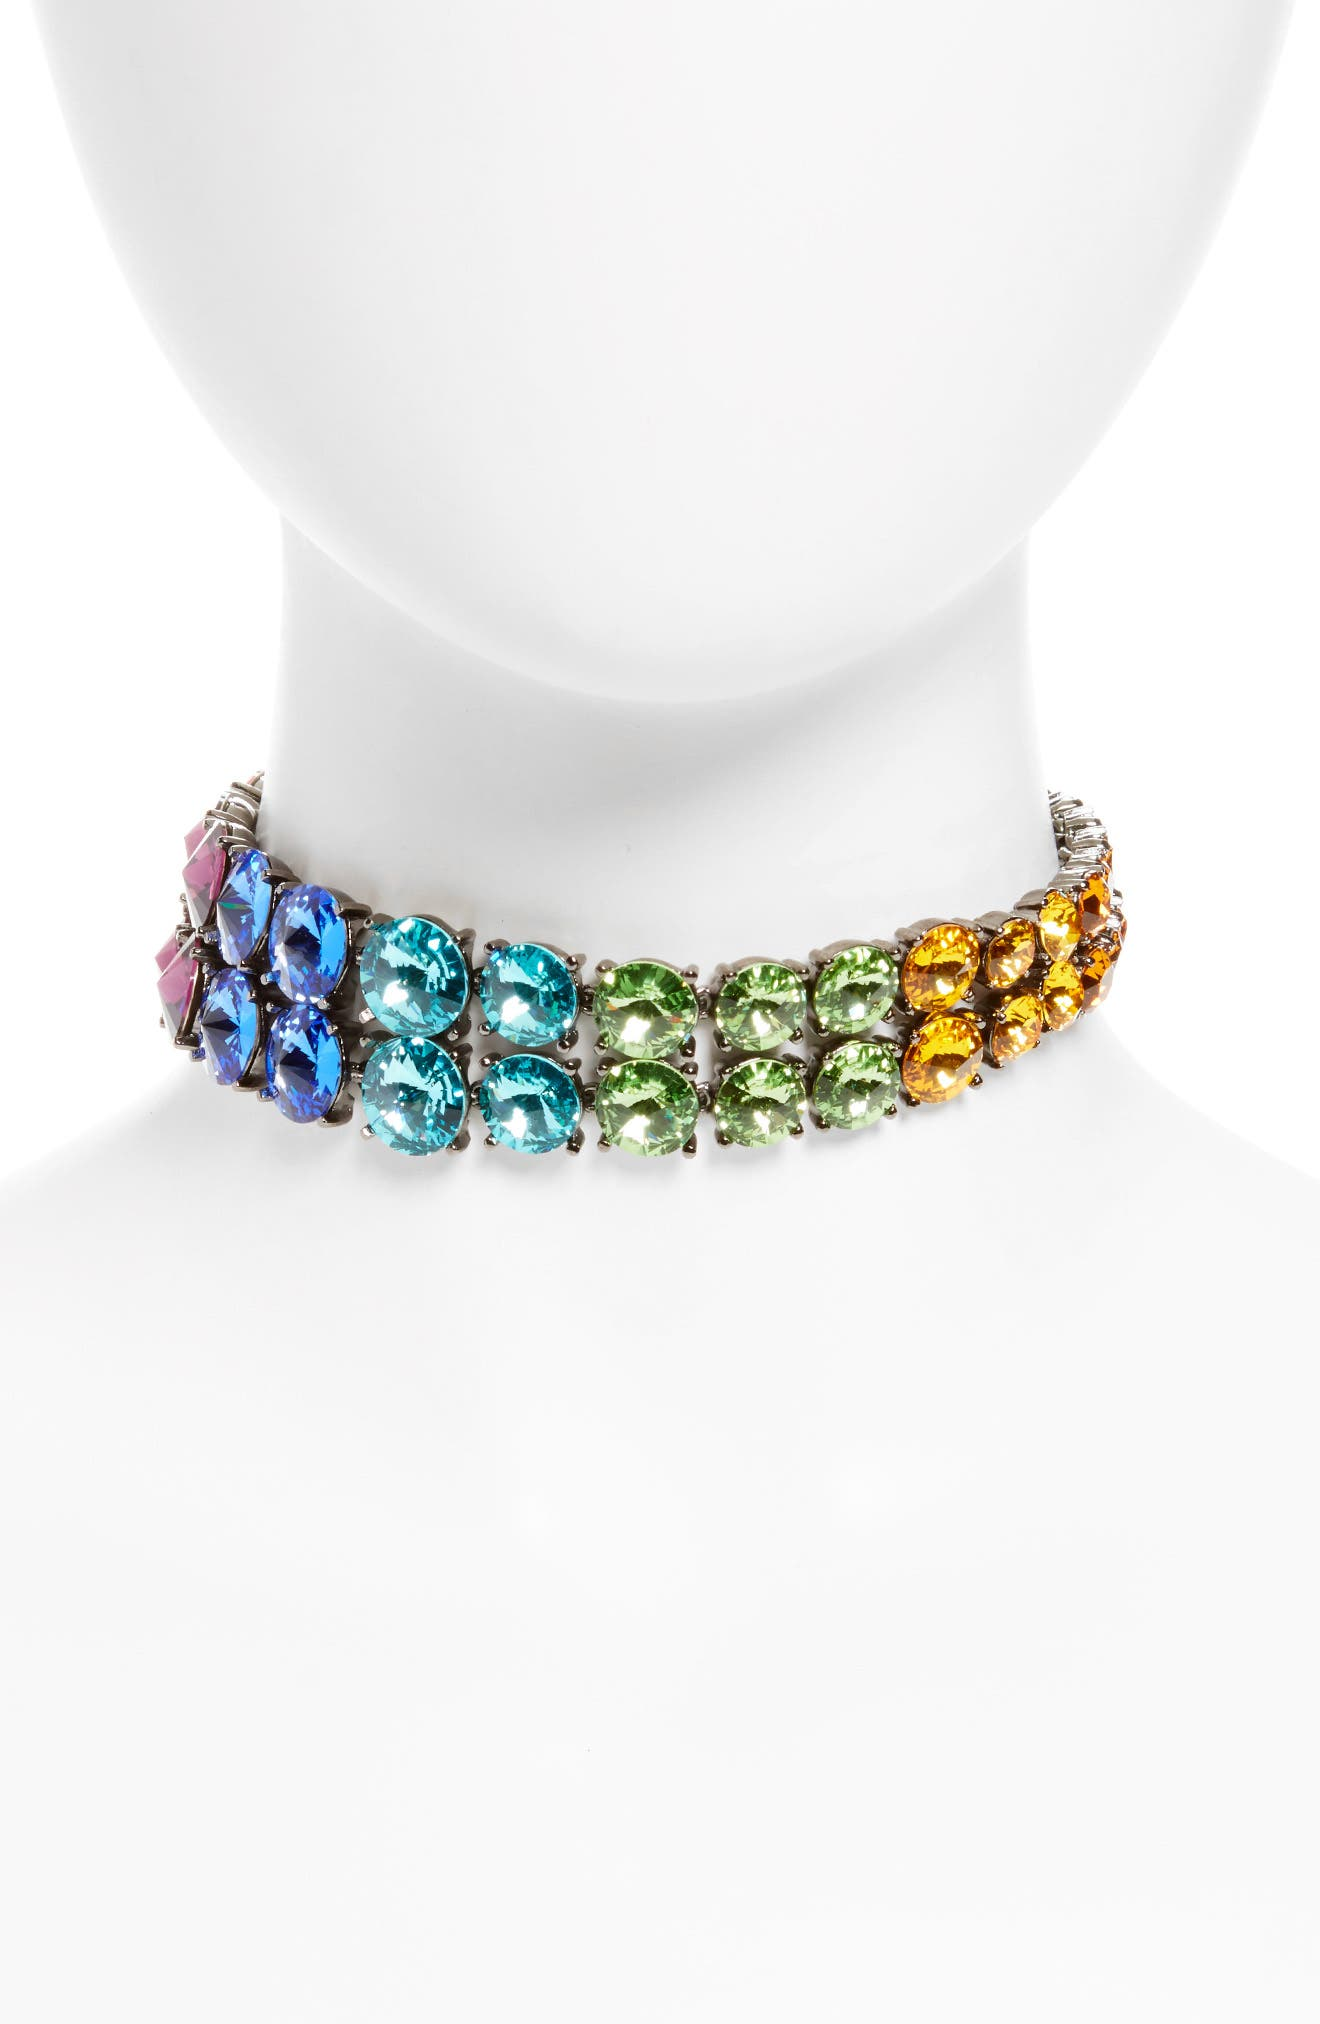 Oscar de la Renta Rainbow Crystal Choker Necklace